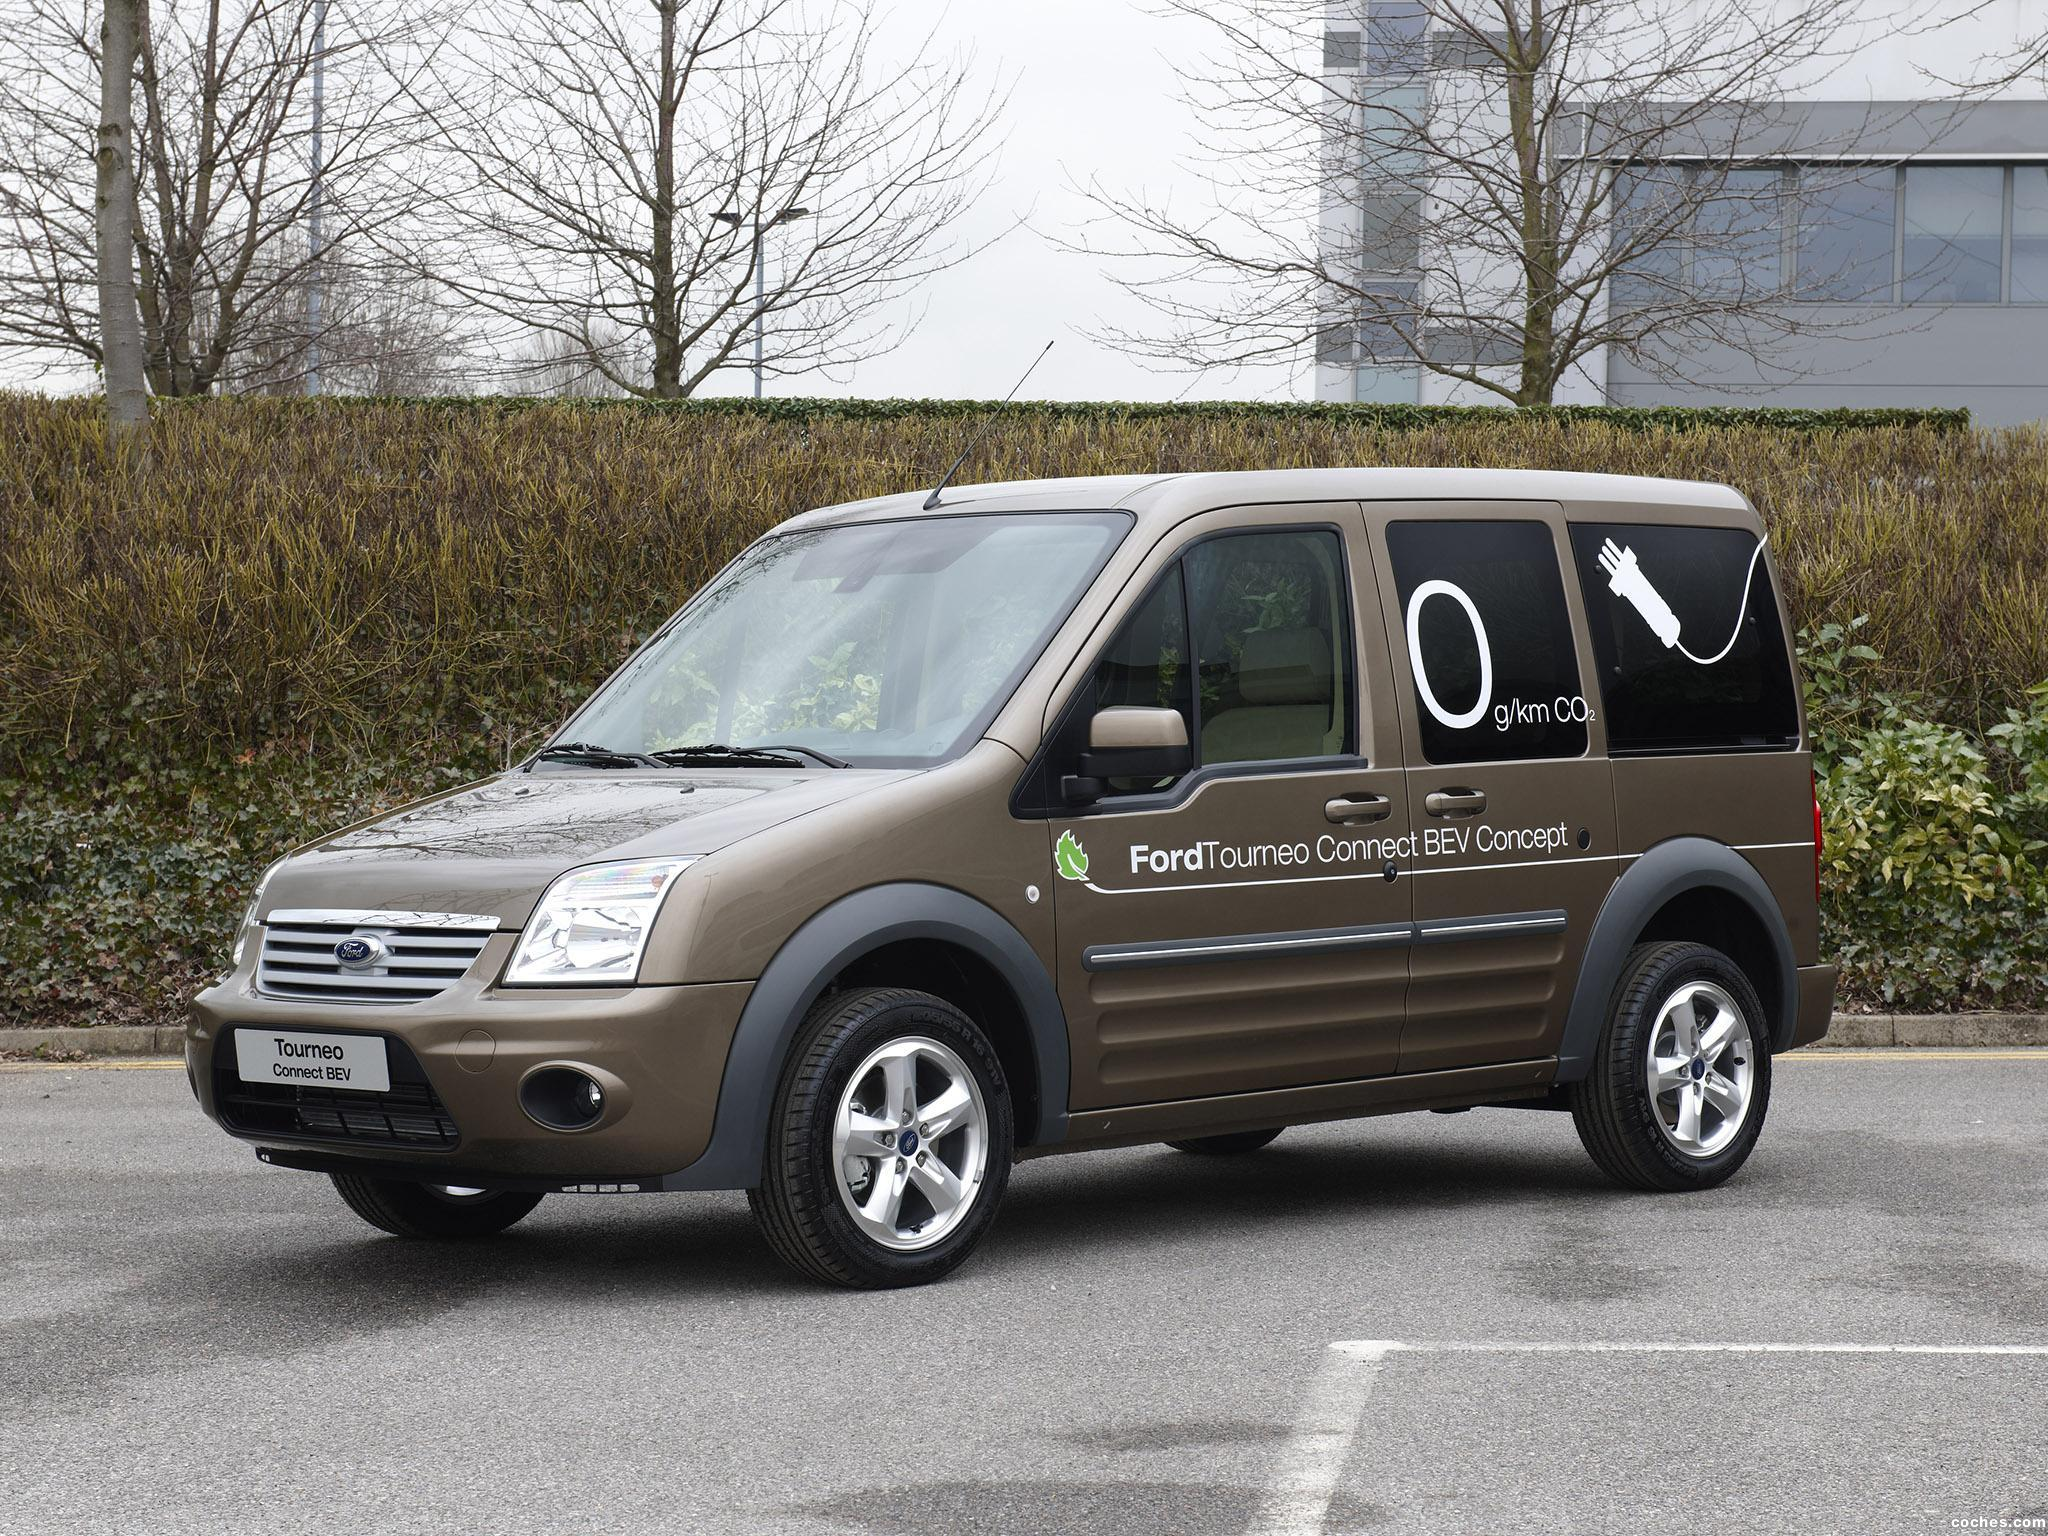 ford_tourneo-connect-bev_r4